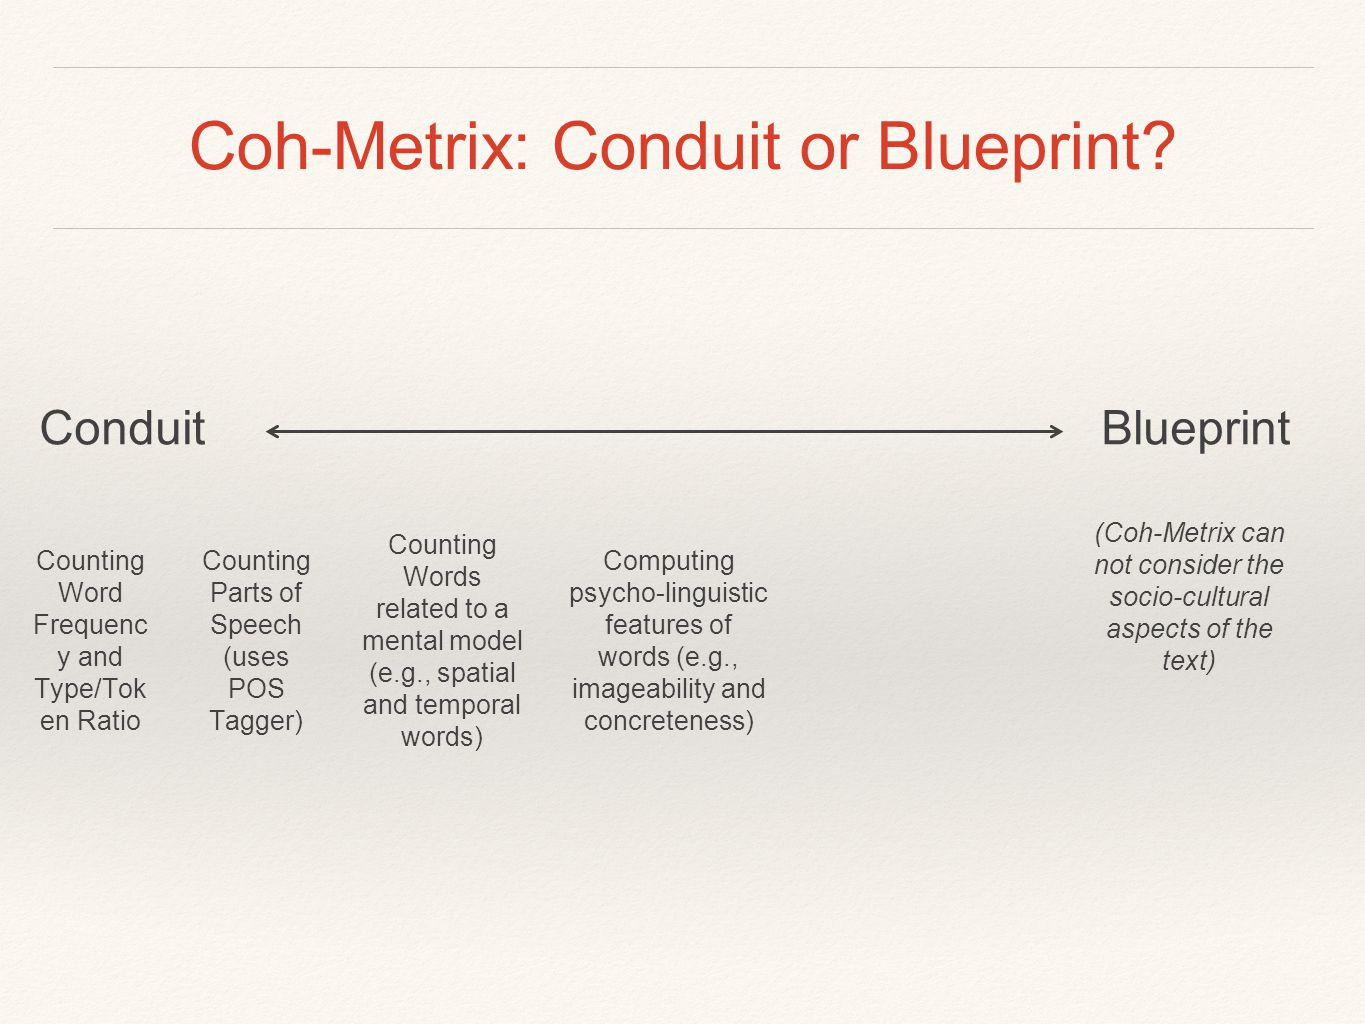 Coh-Metrix: Conduit or Blueprint? Counting Word Frequenc y and Type/Tok en Ratio Counting Parts of Speech (uses POS Tagger) Counting Words related to